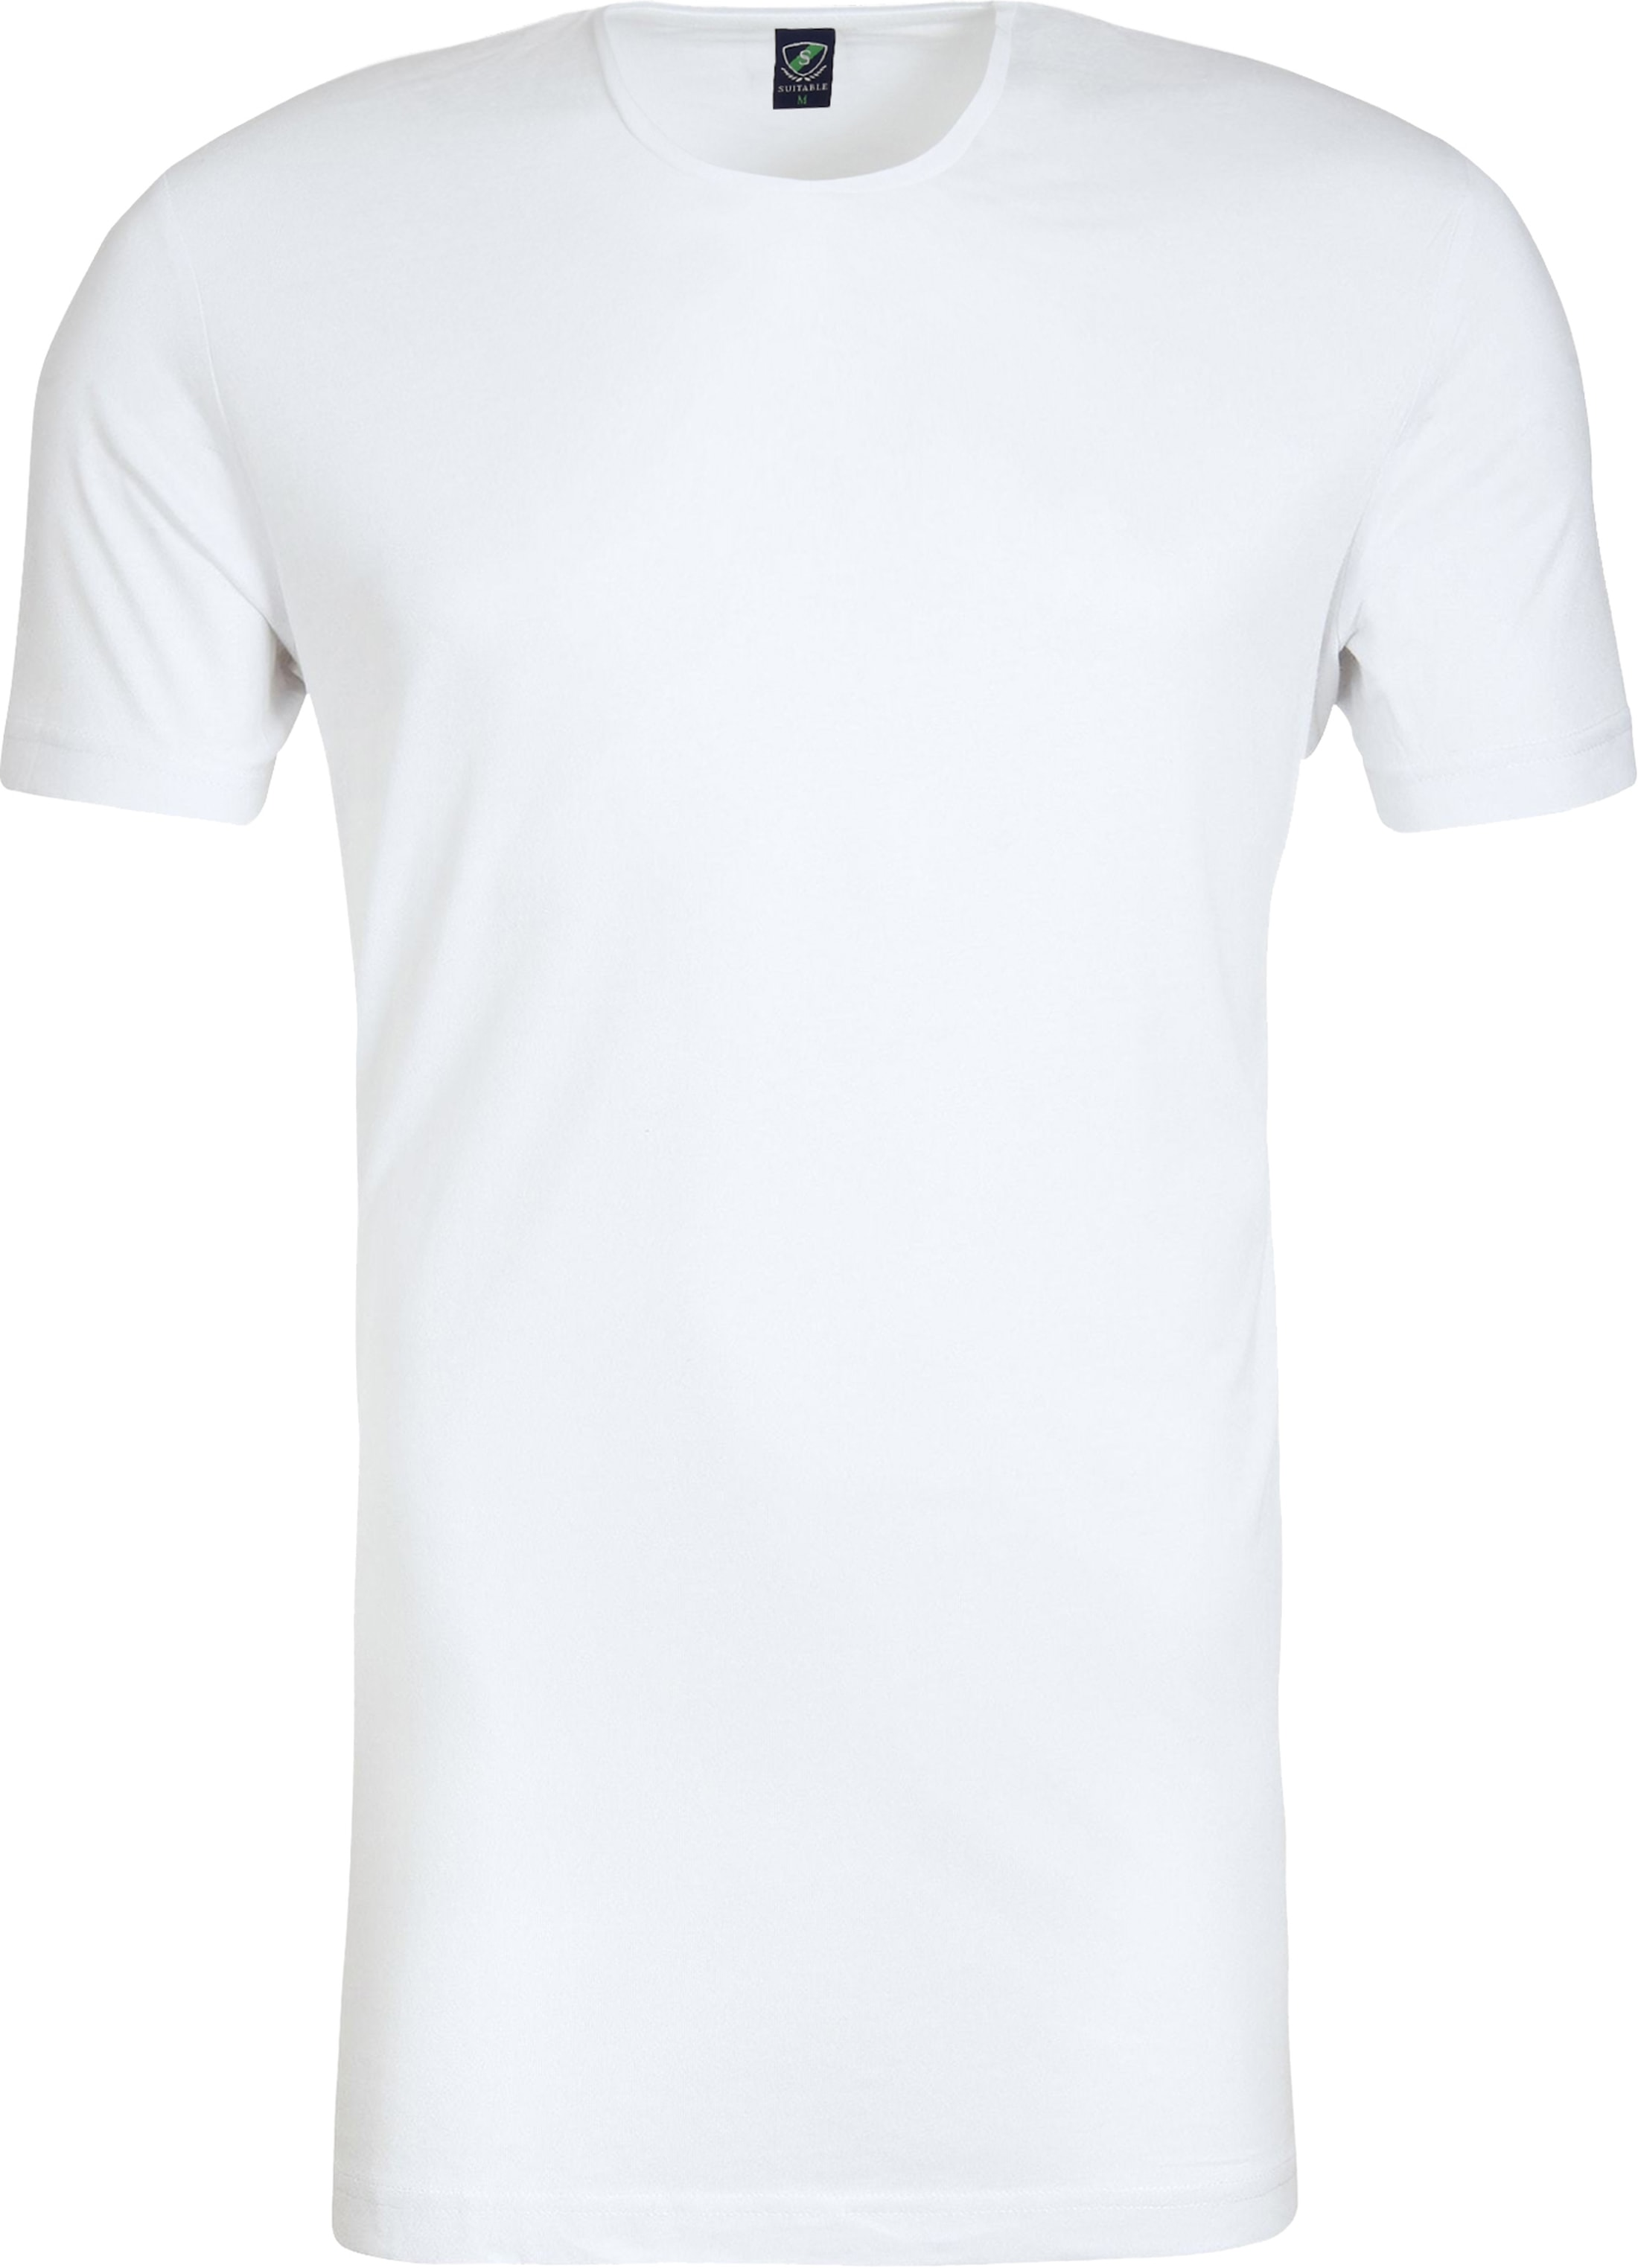 O-Neck 2-Pack Bamboo T-shirts foto 1